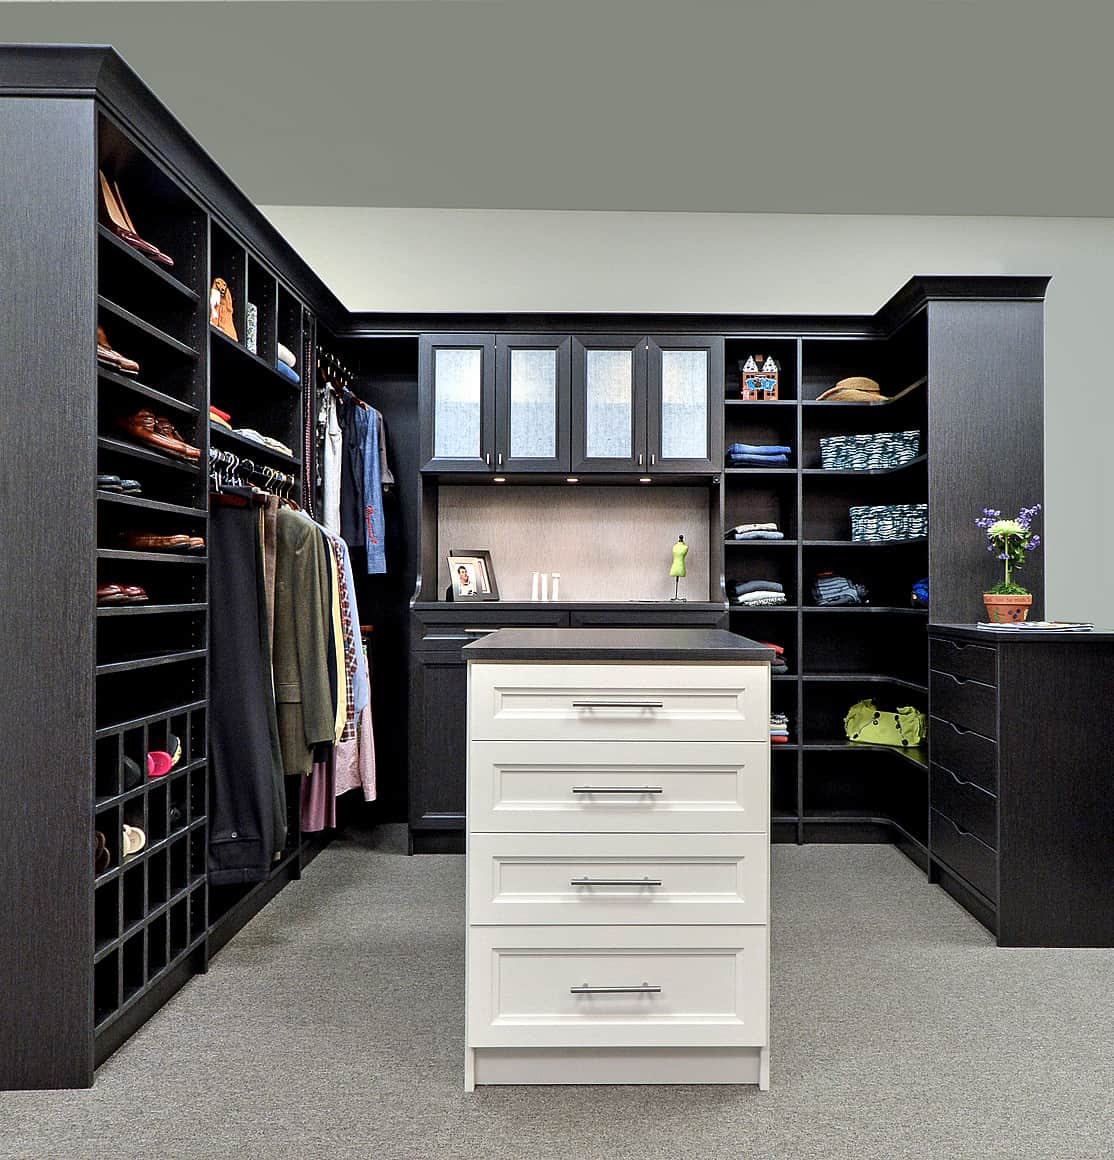 This modern style walk-in wardrobe speaks of the beauty in keeping everything well organized. The shelves are of varying sizes to fit different items while the island in the center add more storage options.